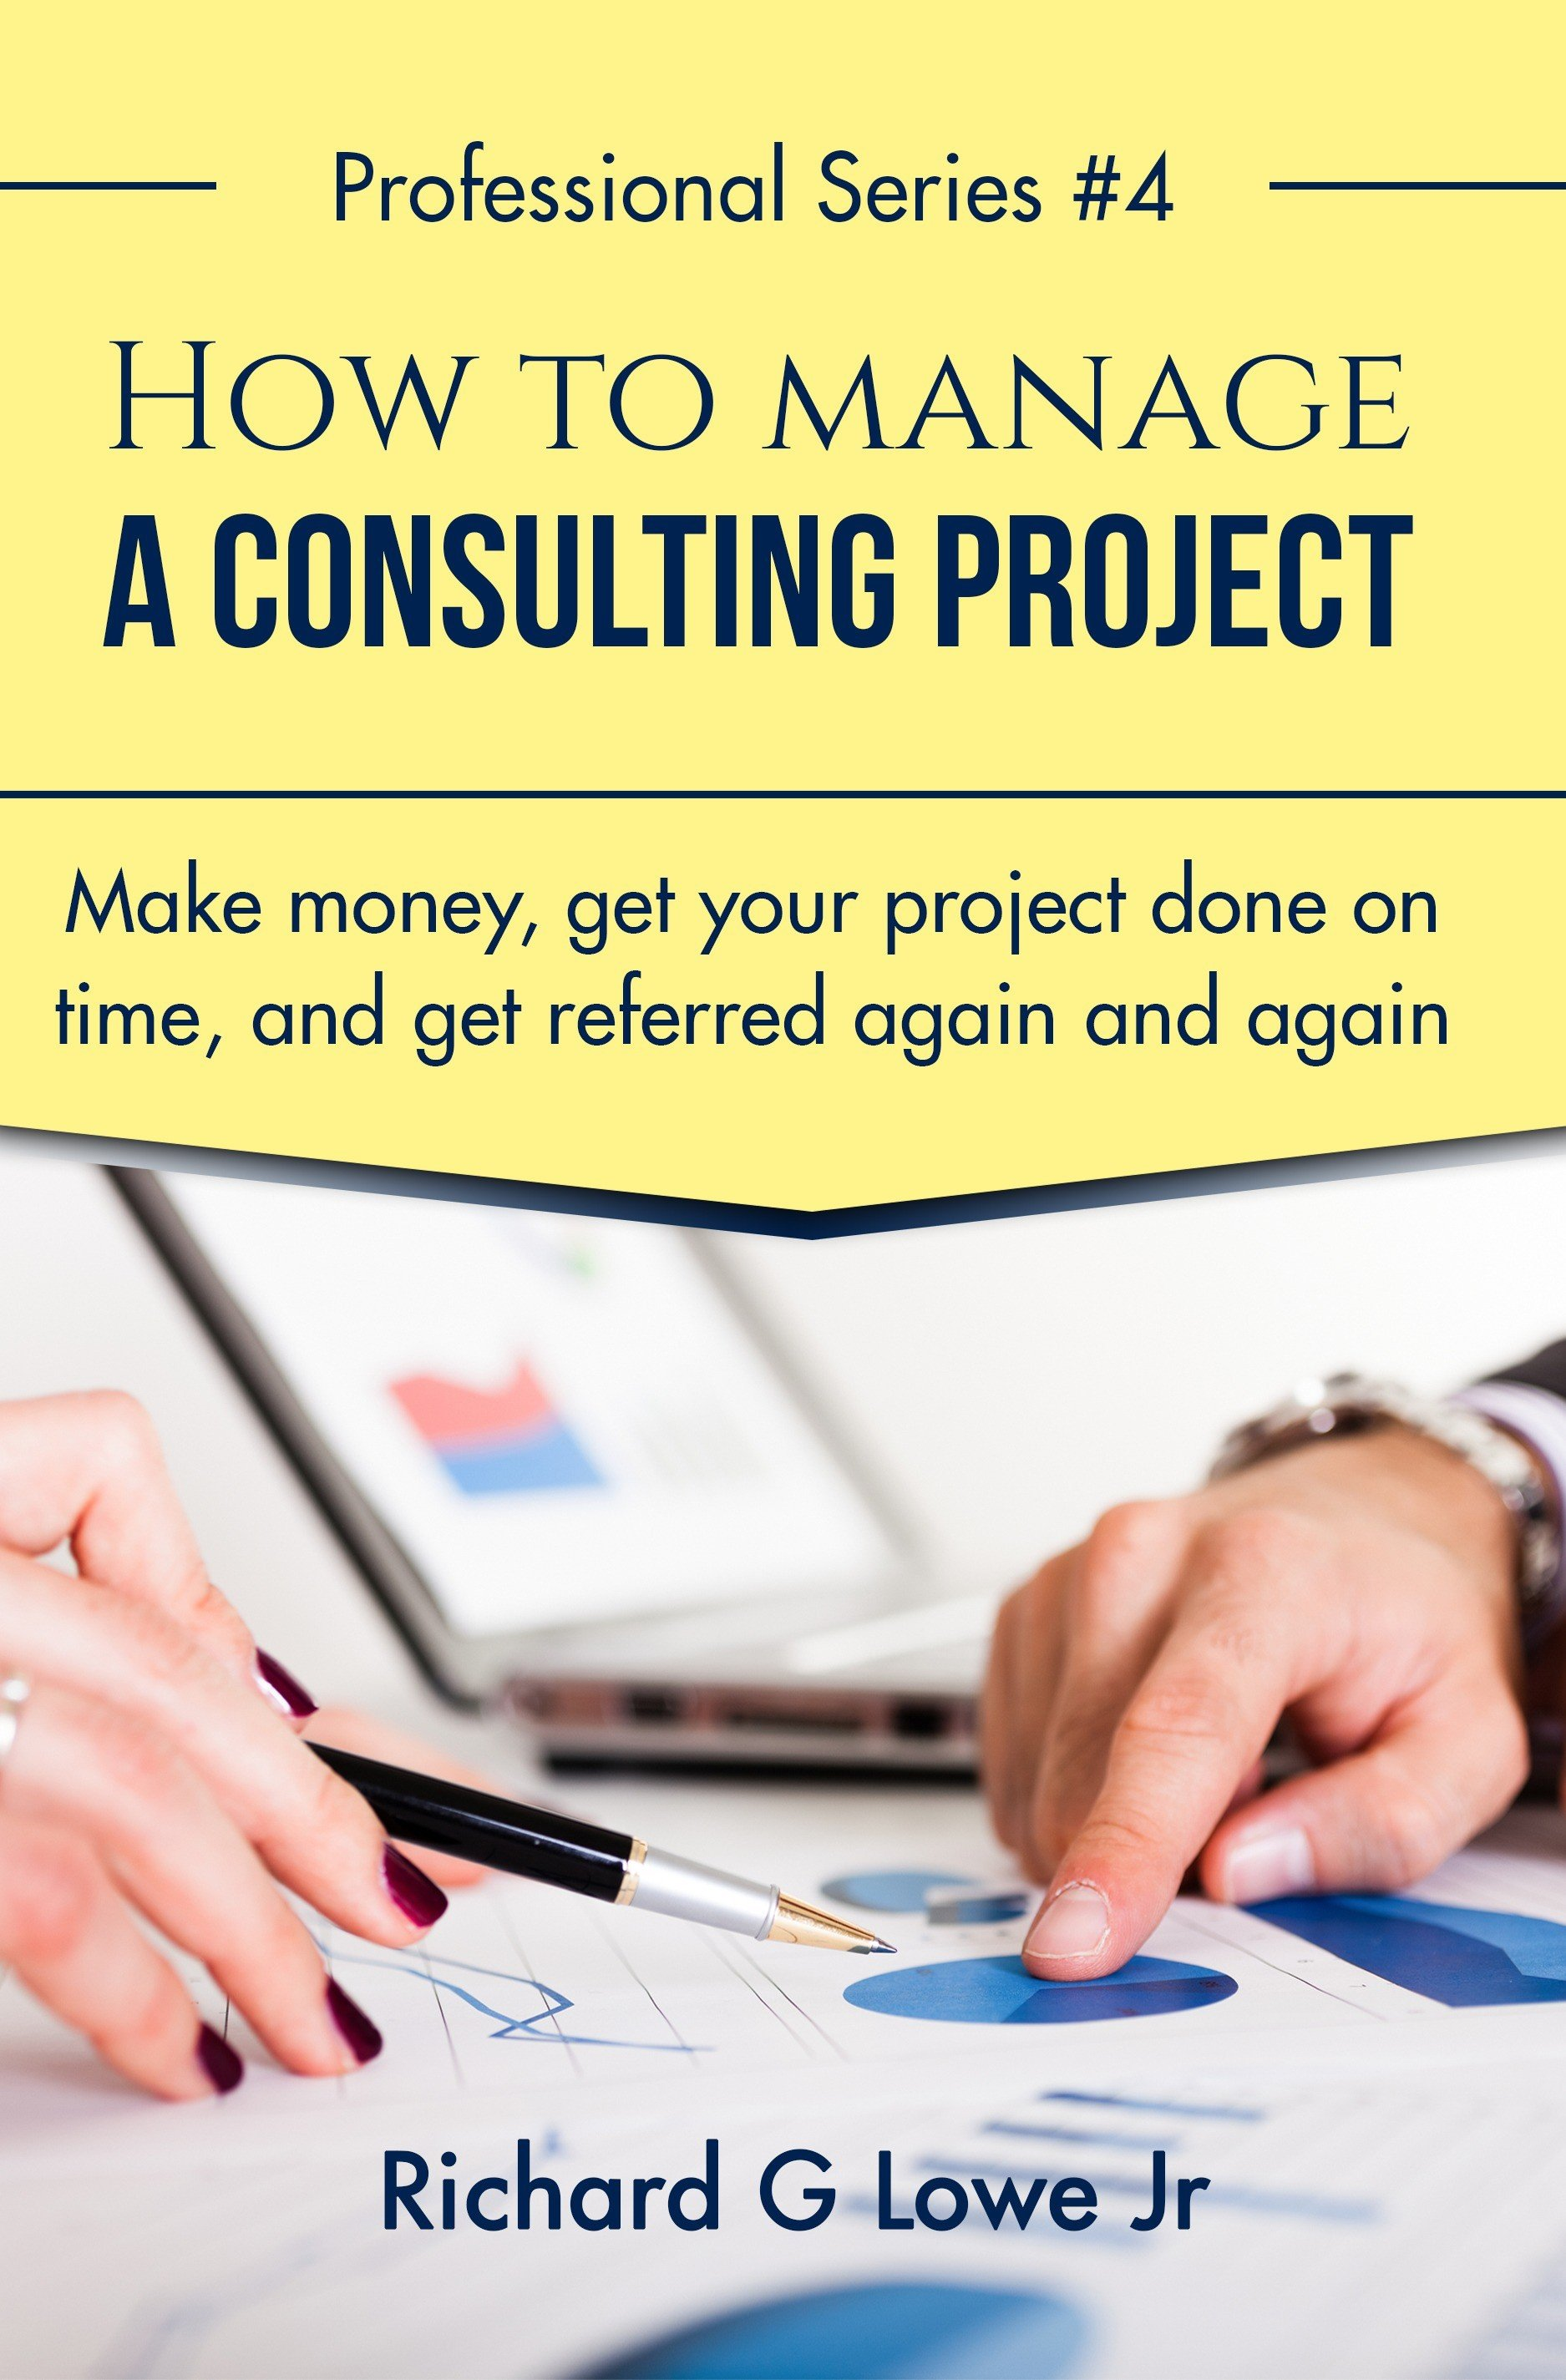 consulting assignment Technology assignment 8 business consulting essay writing services assignment 8 business consulting remember bill he was the gentleman that you helped to start up his business in week 4.